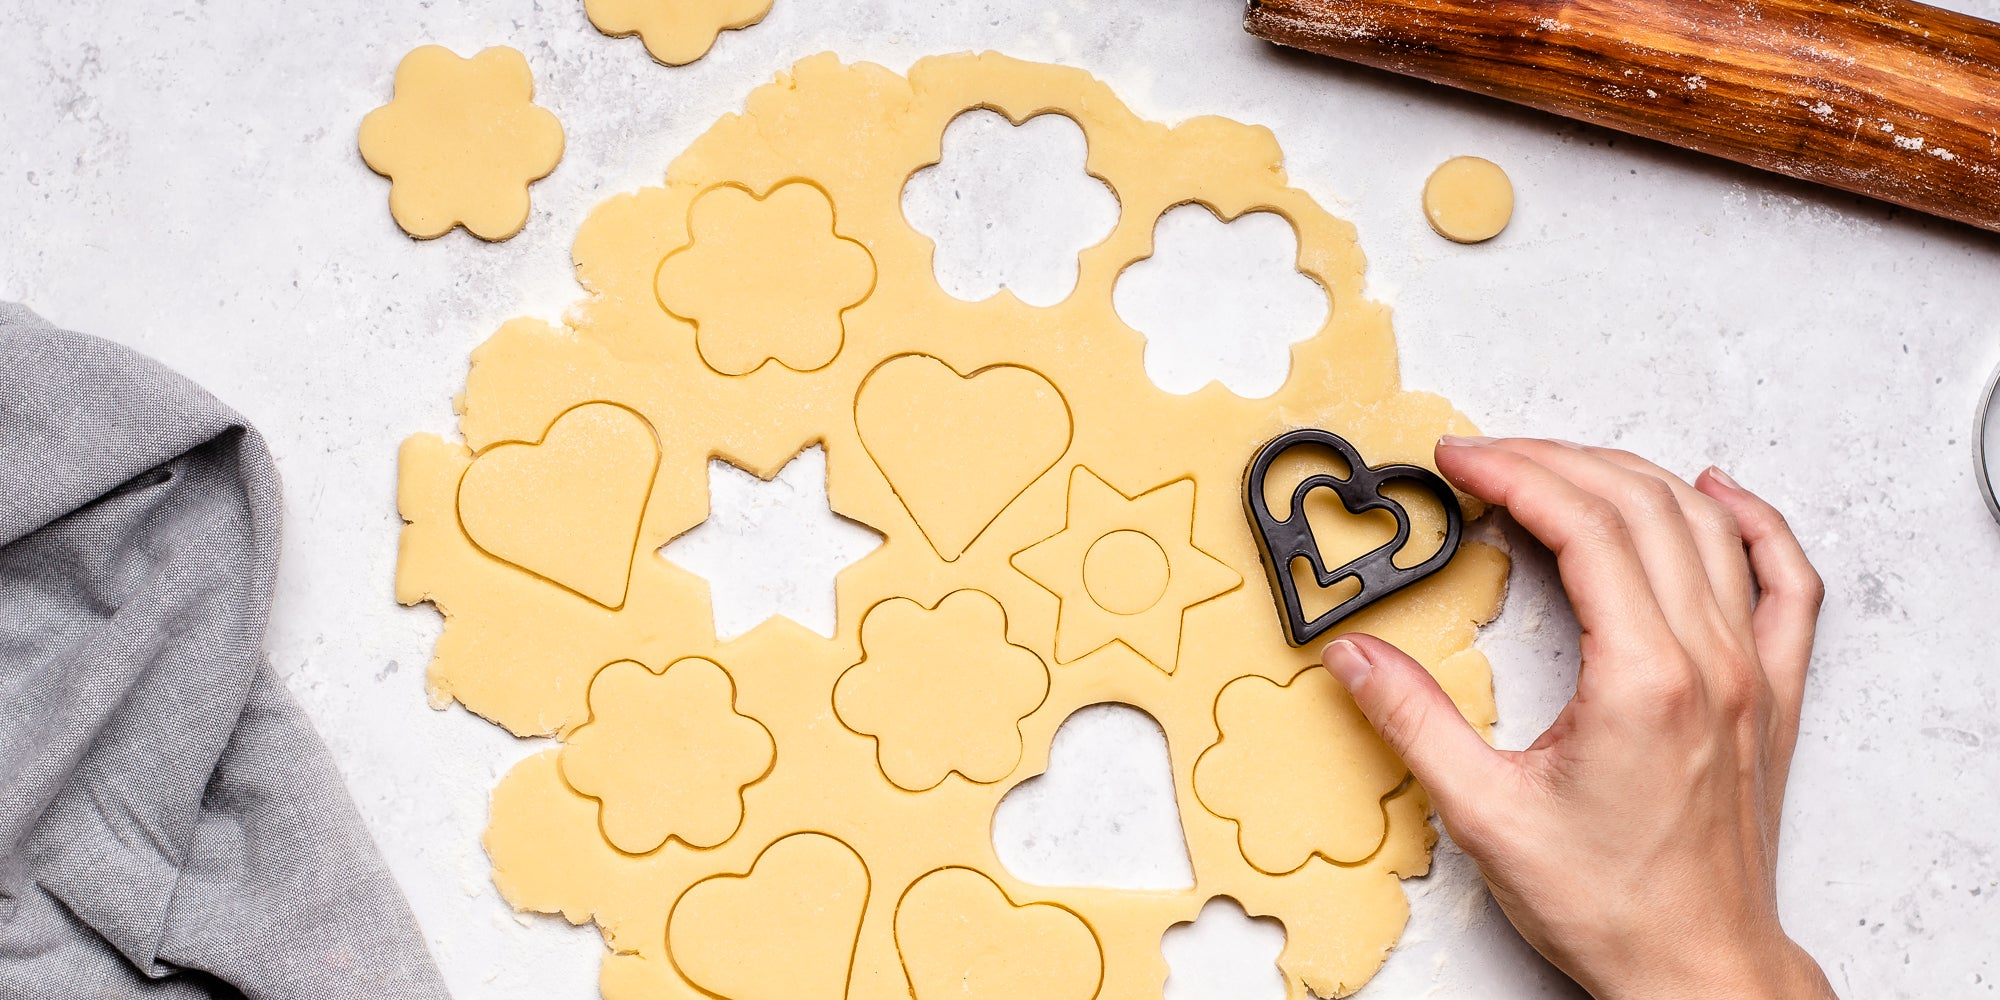 Basic Biscuit Dough rolled out with biscuit cutter and hand.